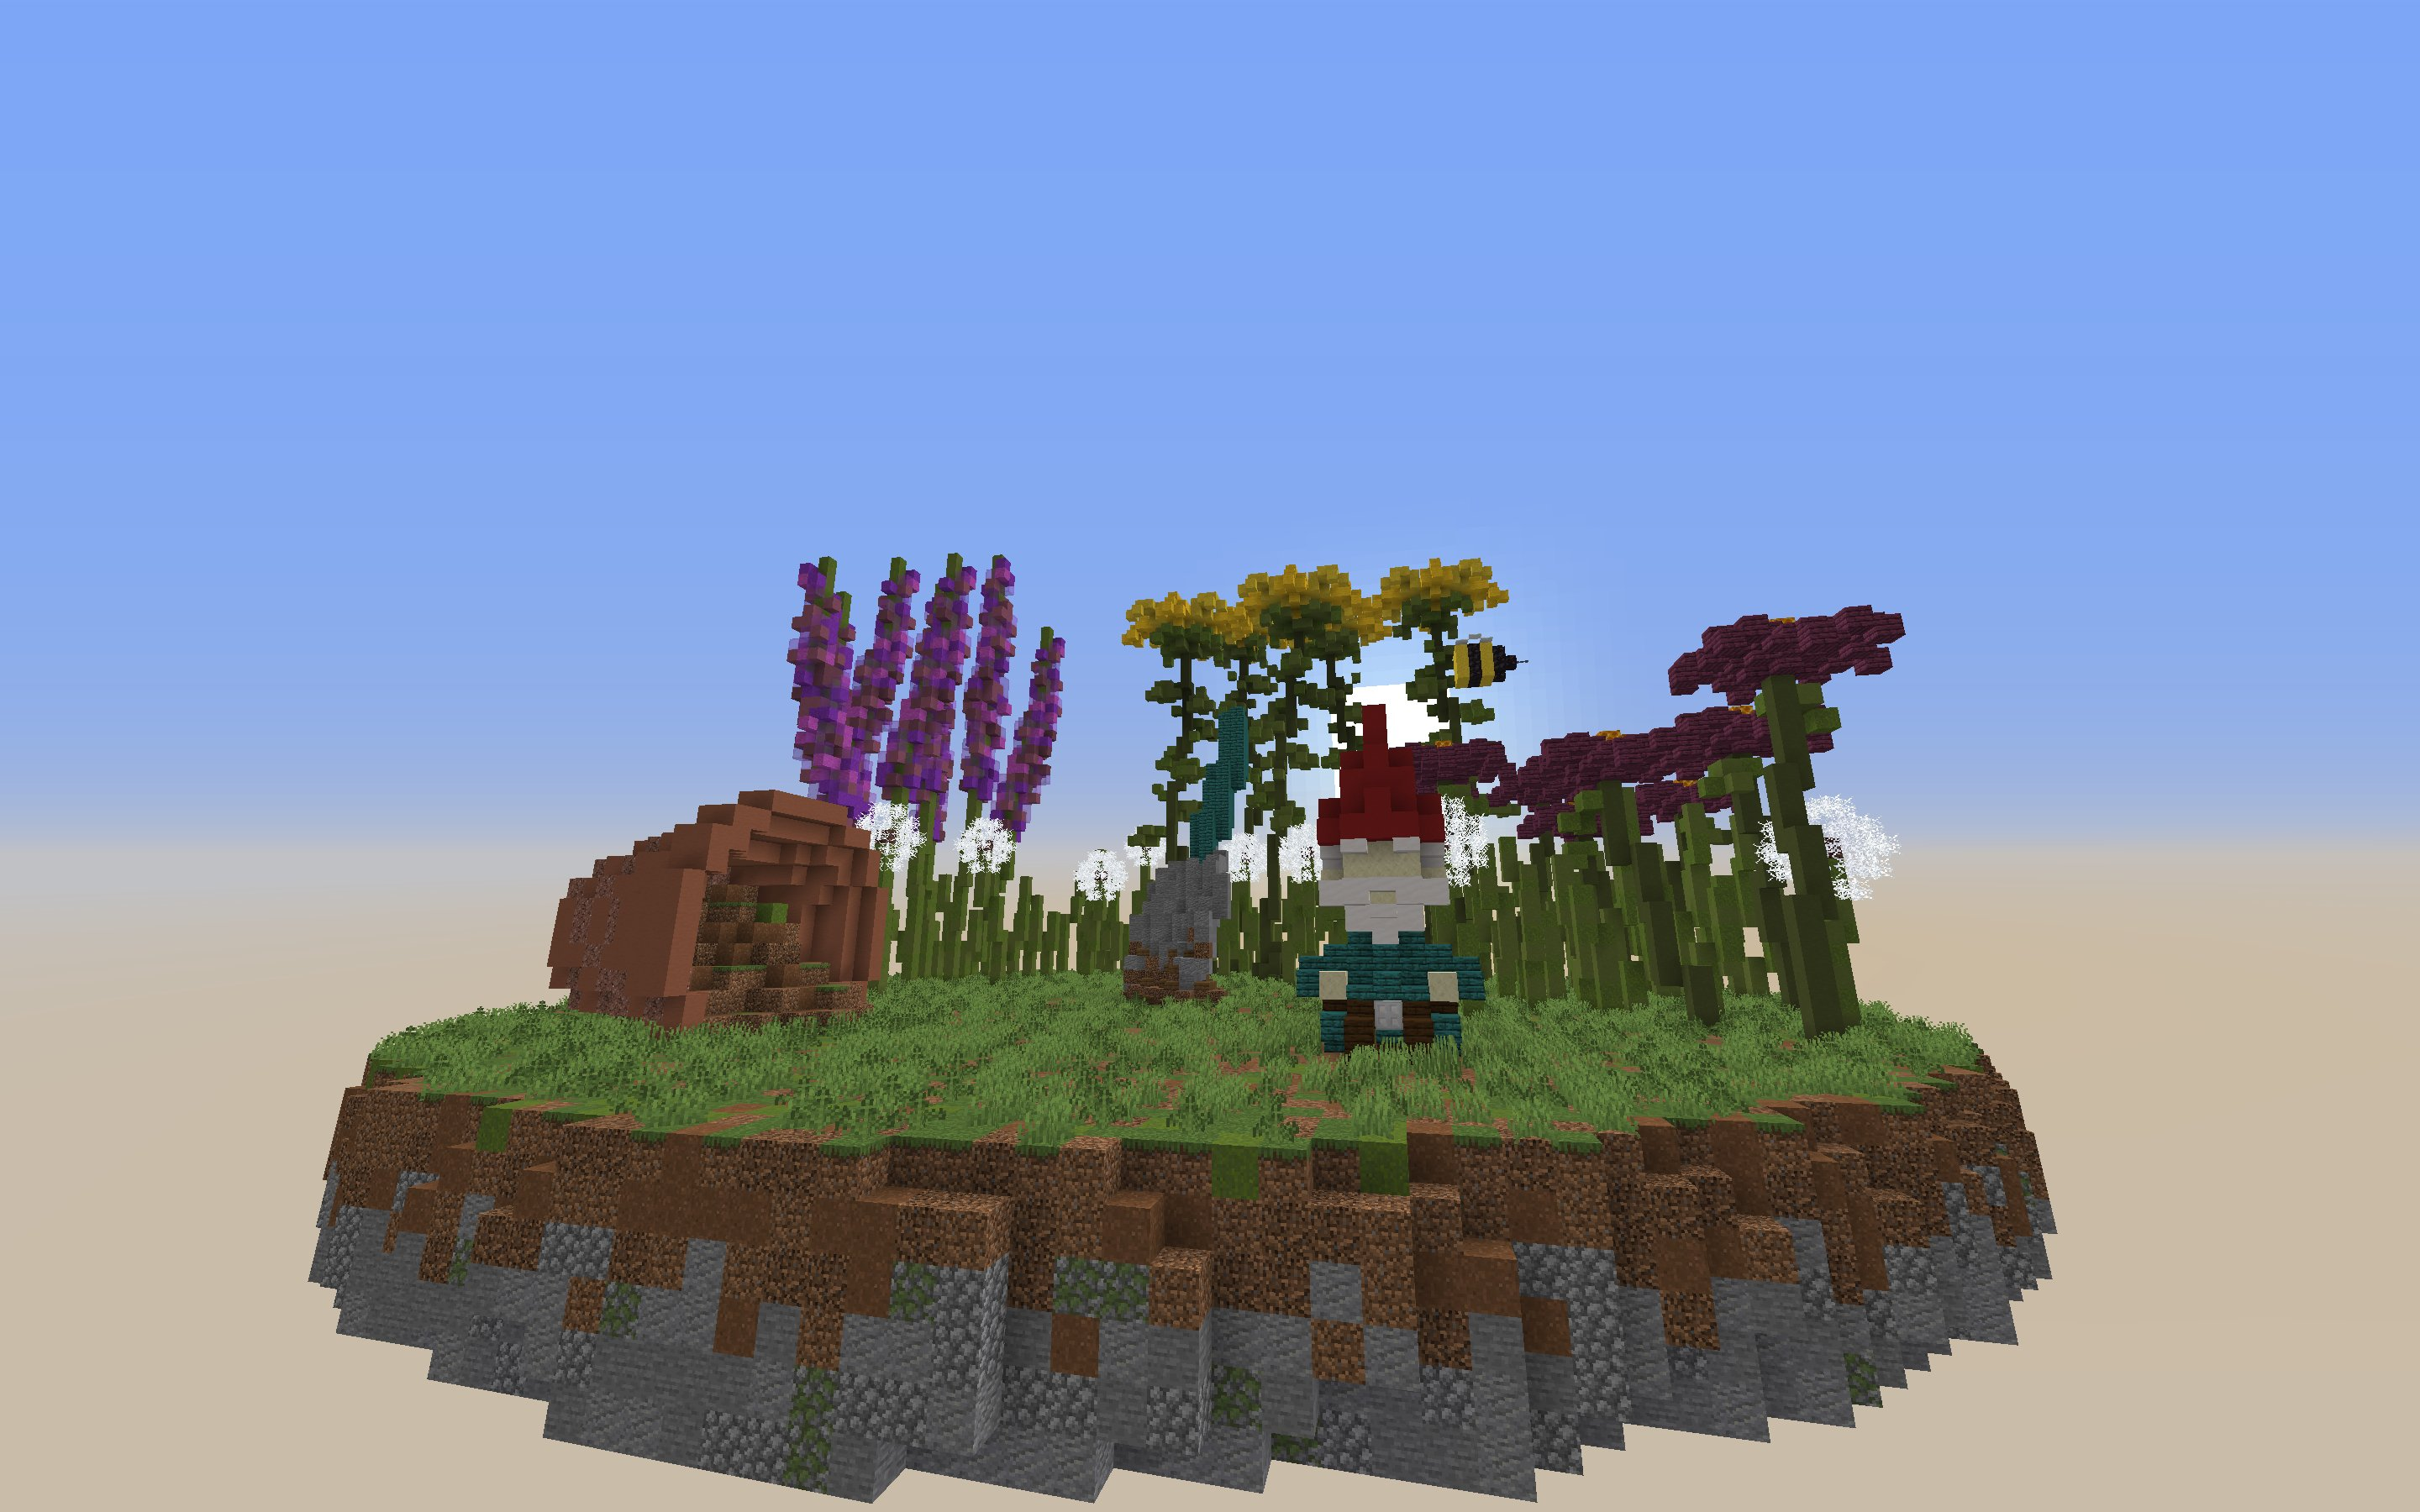 A floating minecraft build of giant flowers, a turned over flower pot, and a lawn gnome.